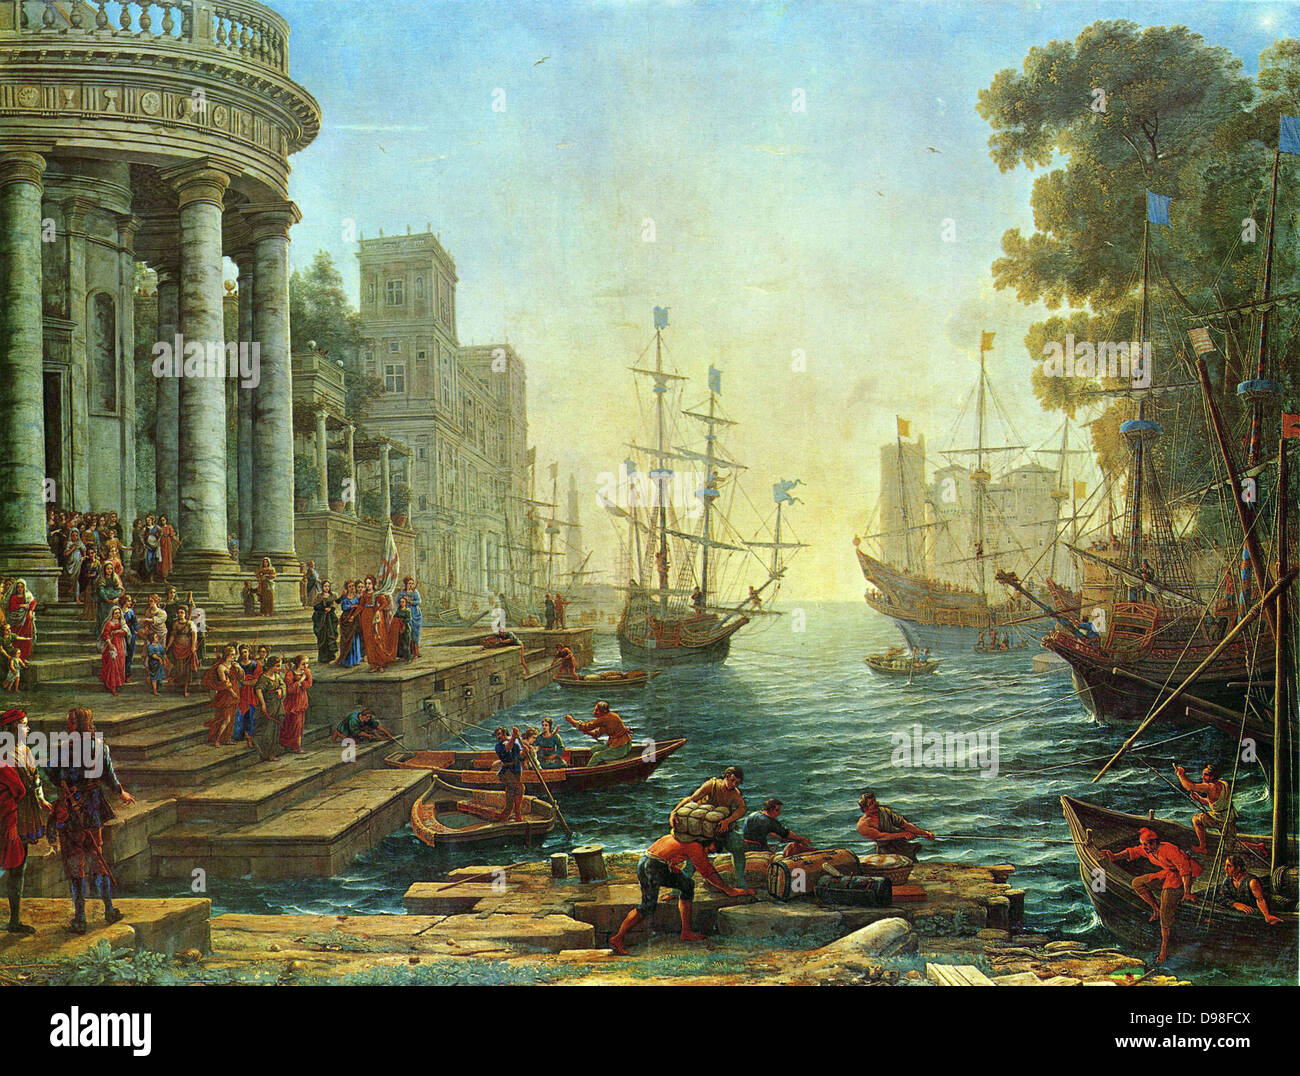 Claude Lorrain 'Seaport' with the Embarkation of Saint Ursula Painted by Claude Lorraine, French painter - Stock Image